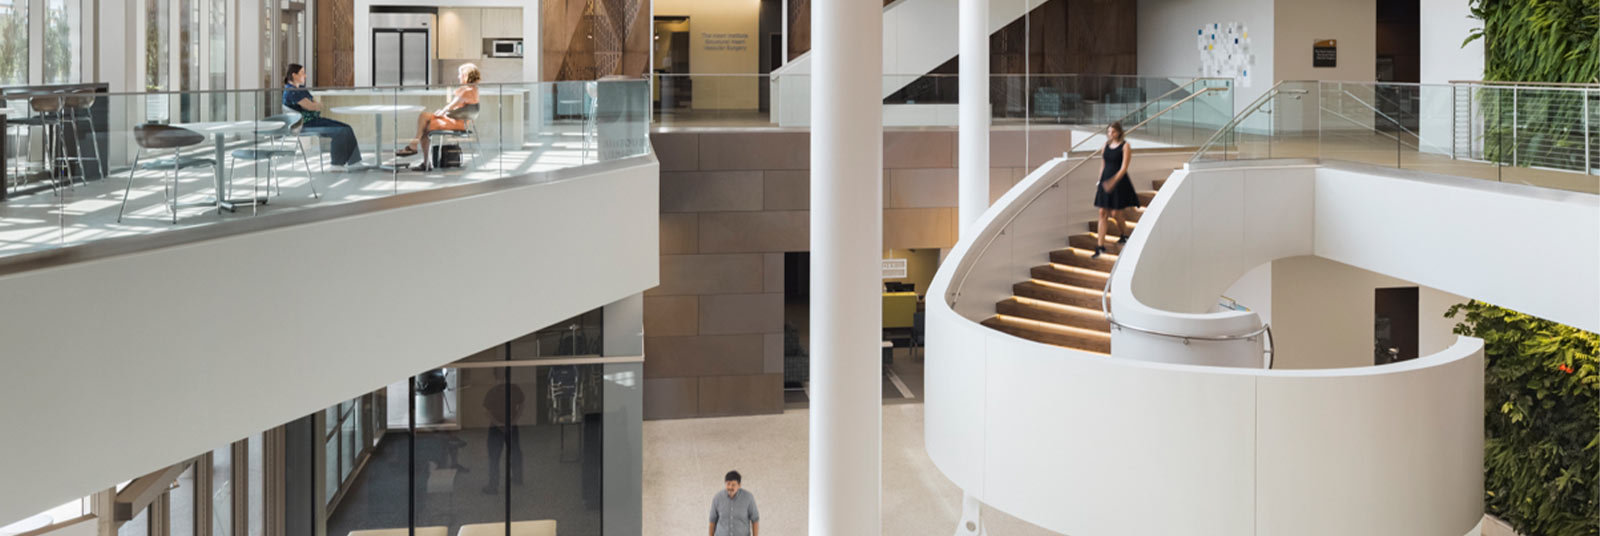 The main atrium with helical staircase at the TriHealth Thomas Comprehensive Care Center